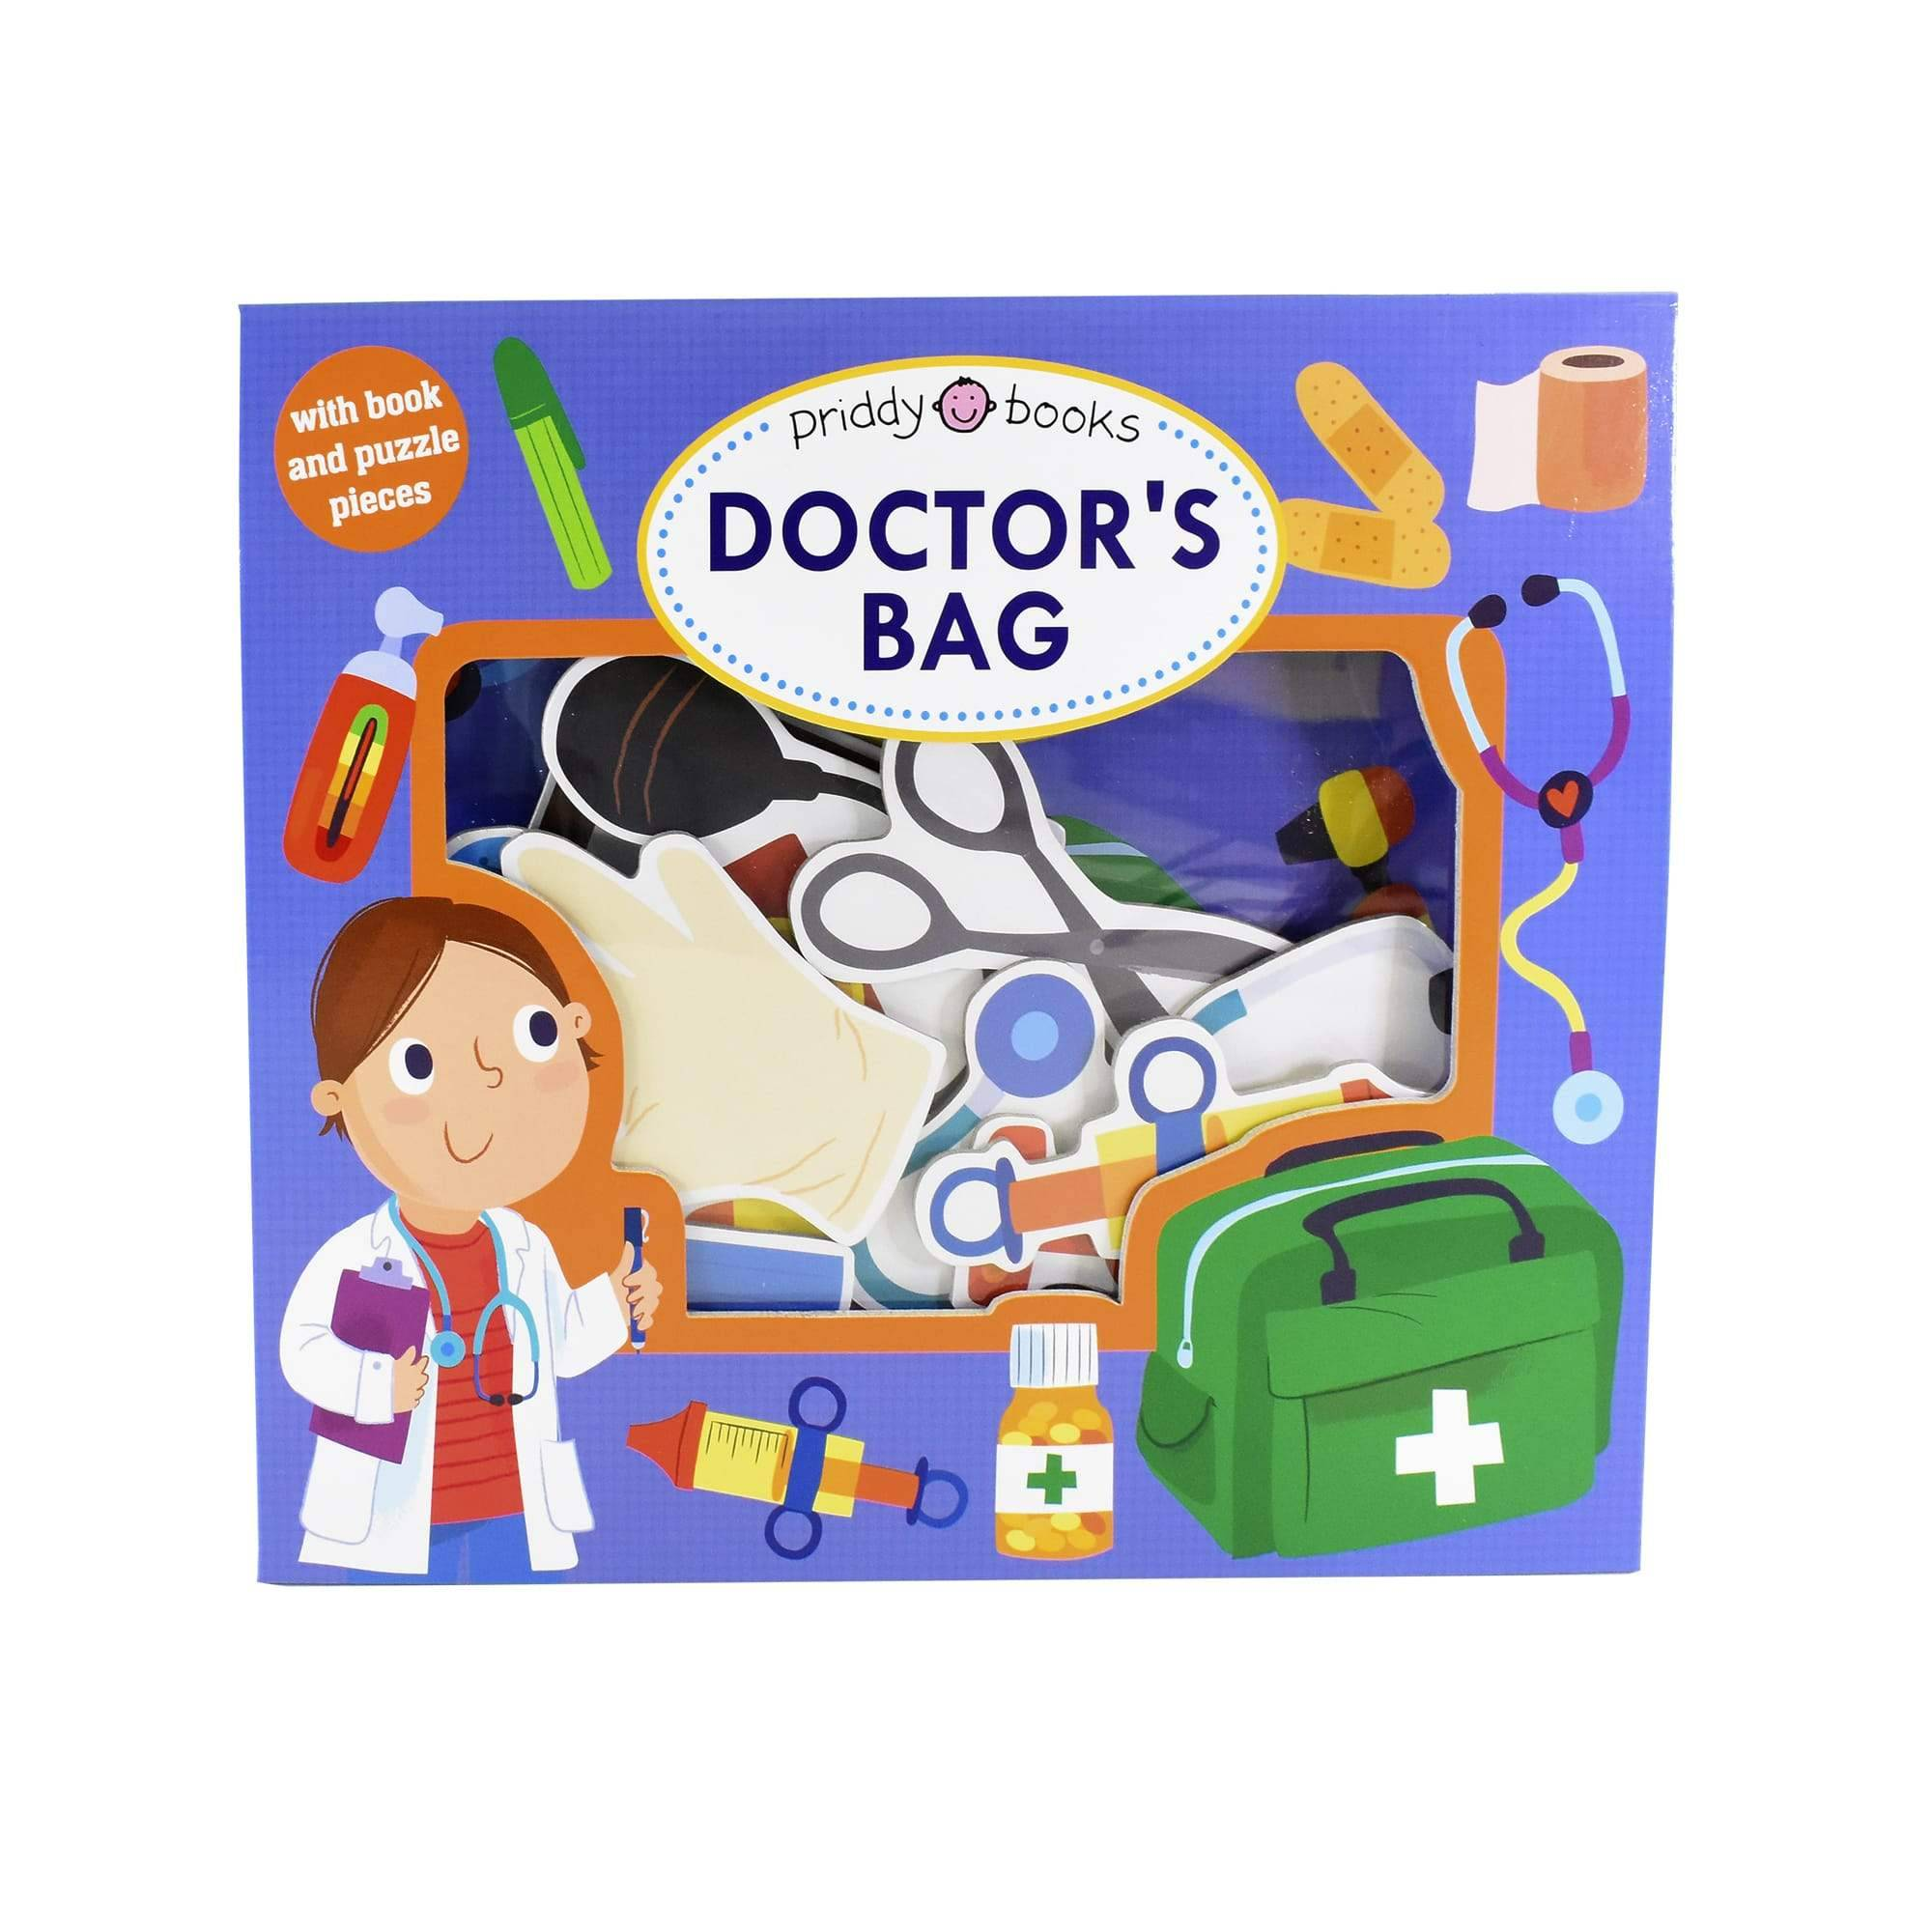 Priddy Books Lets Pretend Doctors Bag by Roger Priddy - Ages 0-5 - Board Book